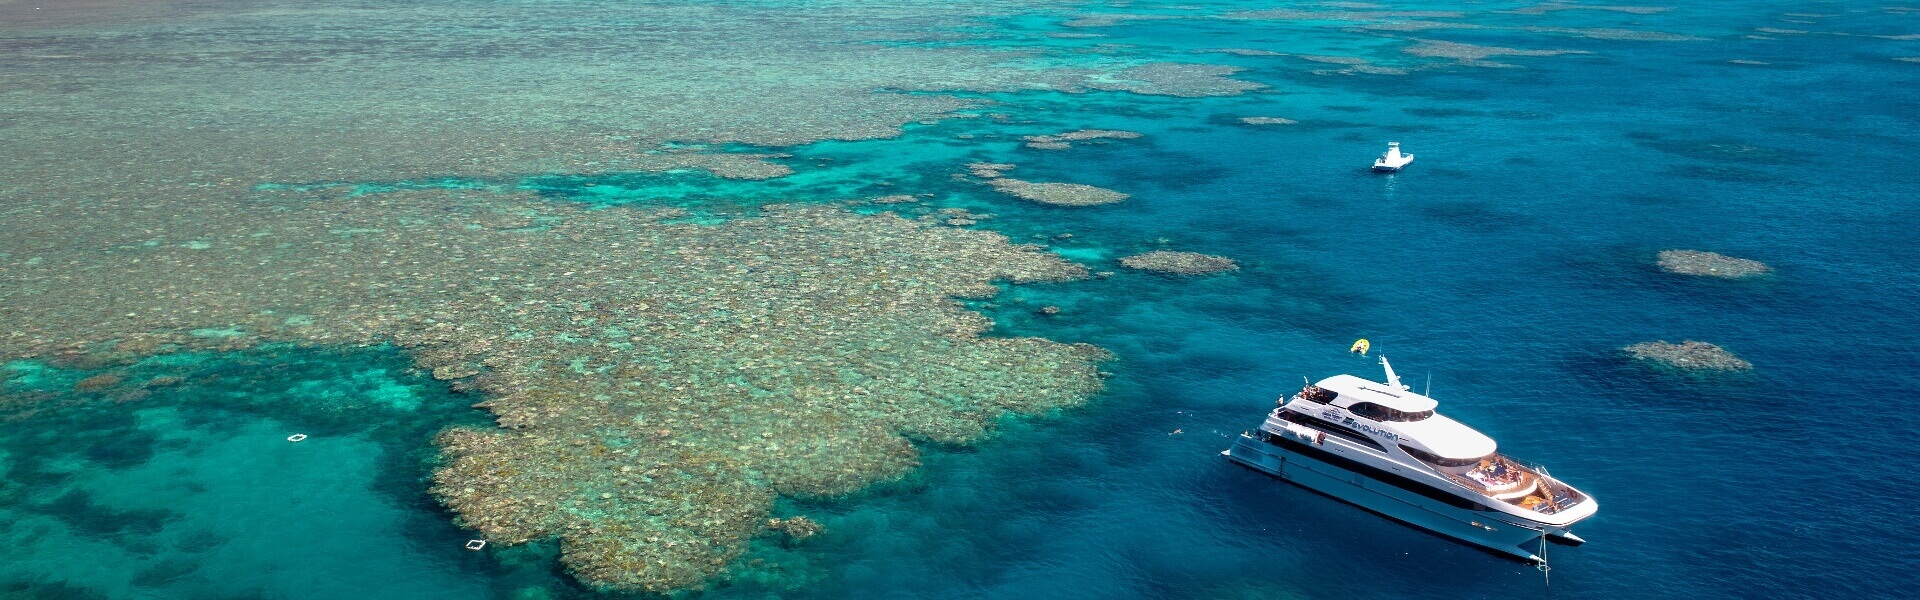 Down Under Cruise and Dive Scenic Flight